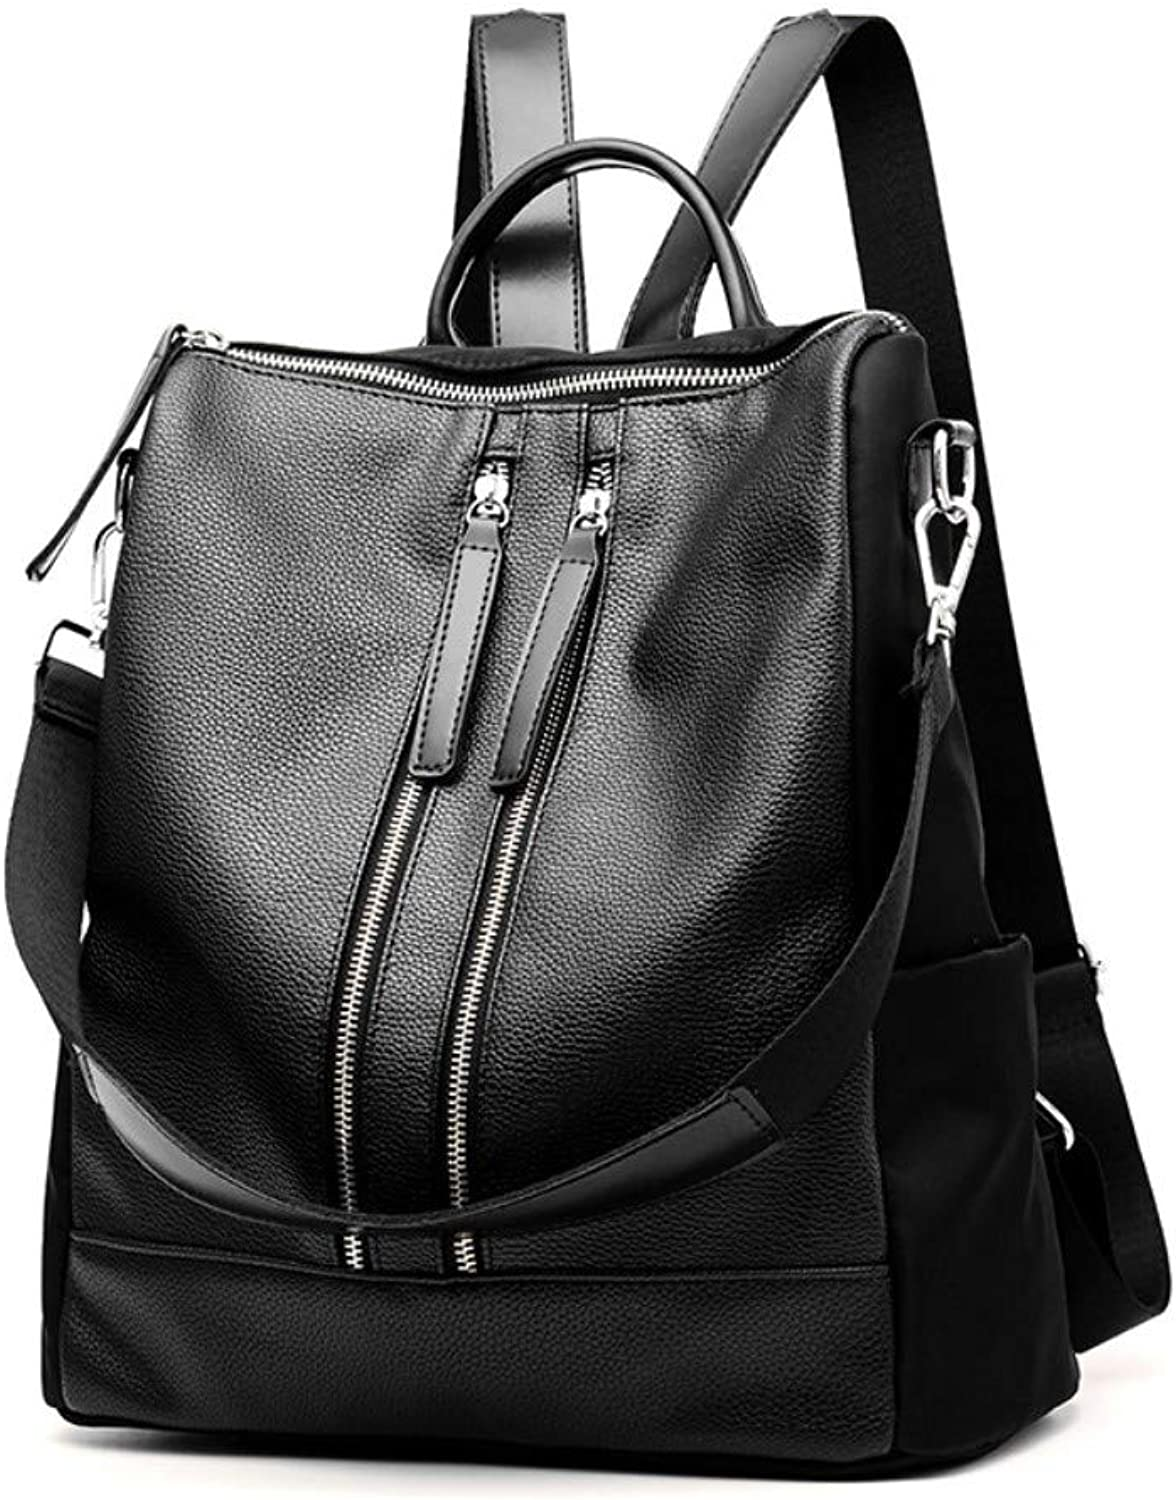 Z.H-H Wild Fashion, Small Fresh Lady Casual, Simple and Large-Capacity Personality PU Soft Leather Backpack